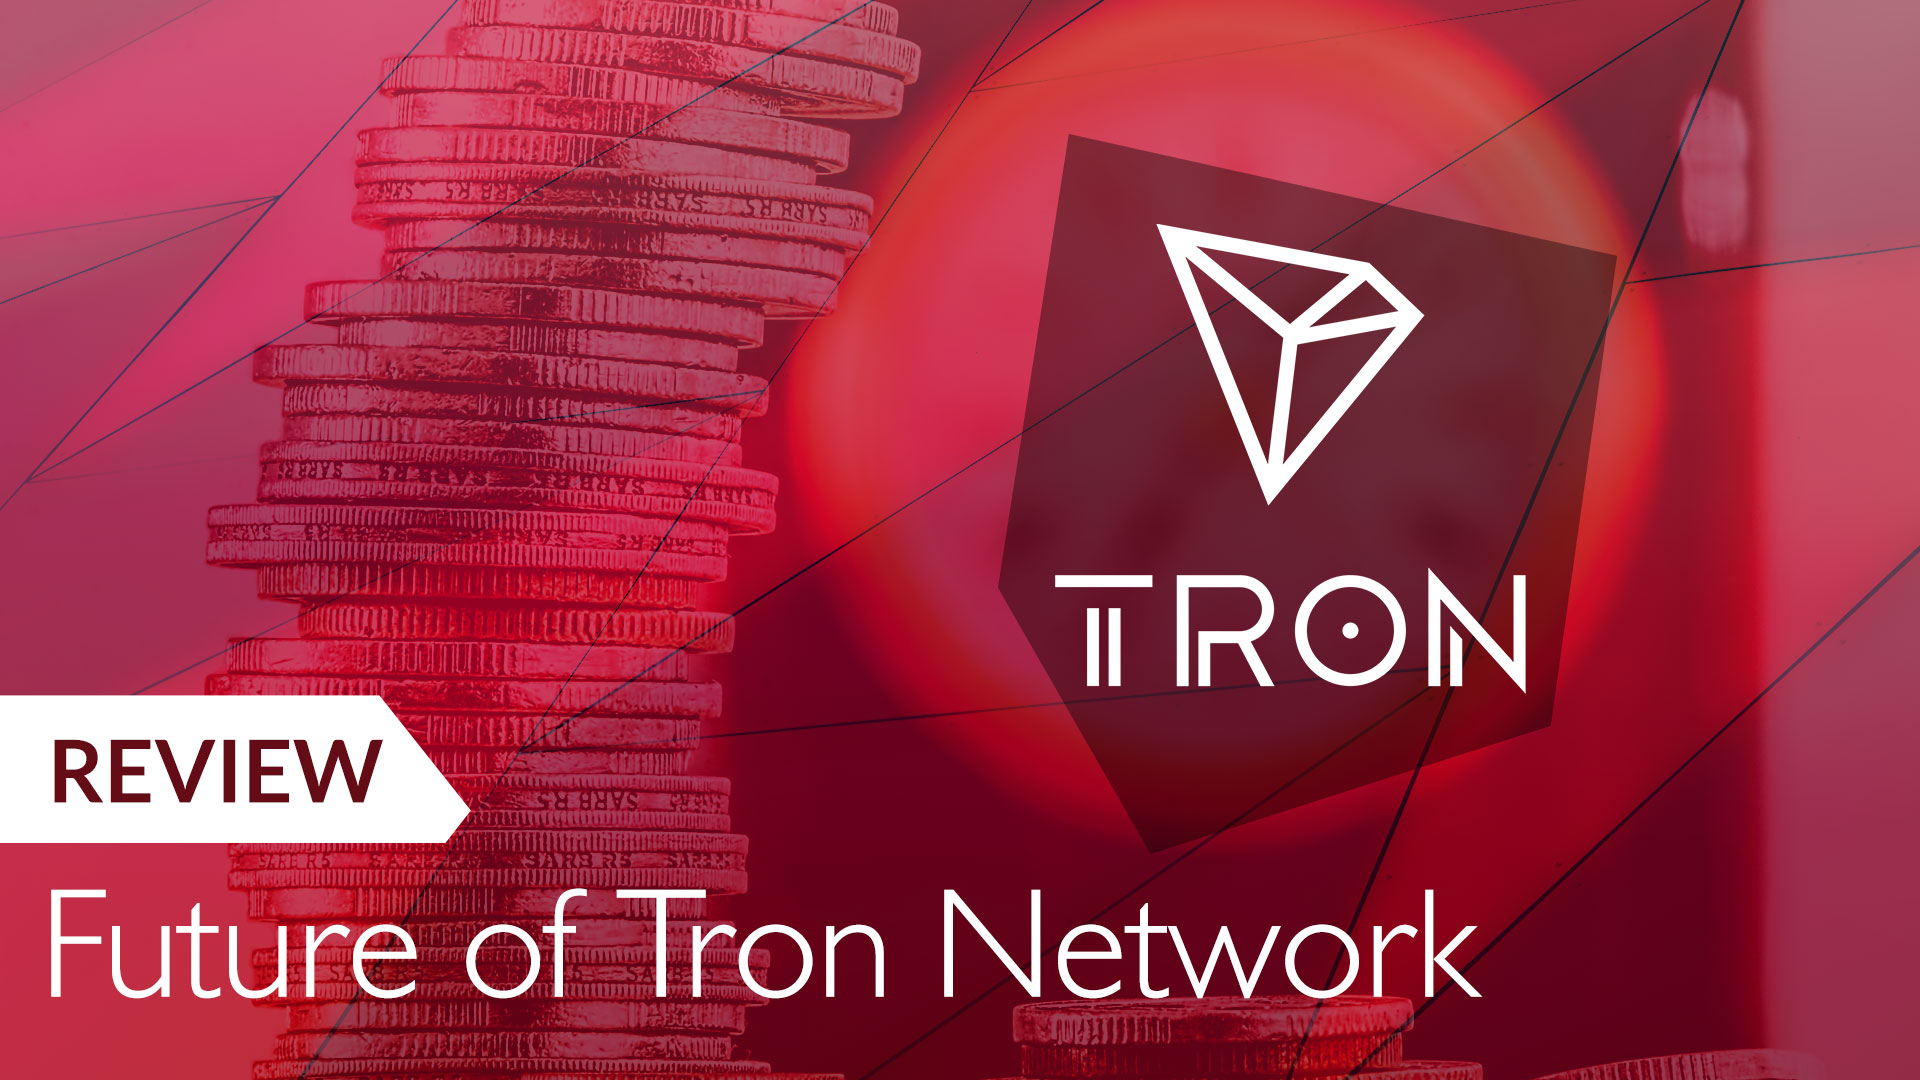 Review and Future of Tron Network